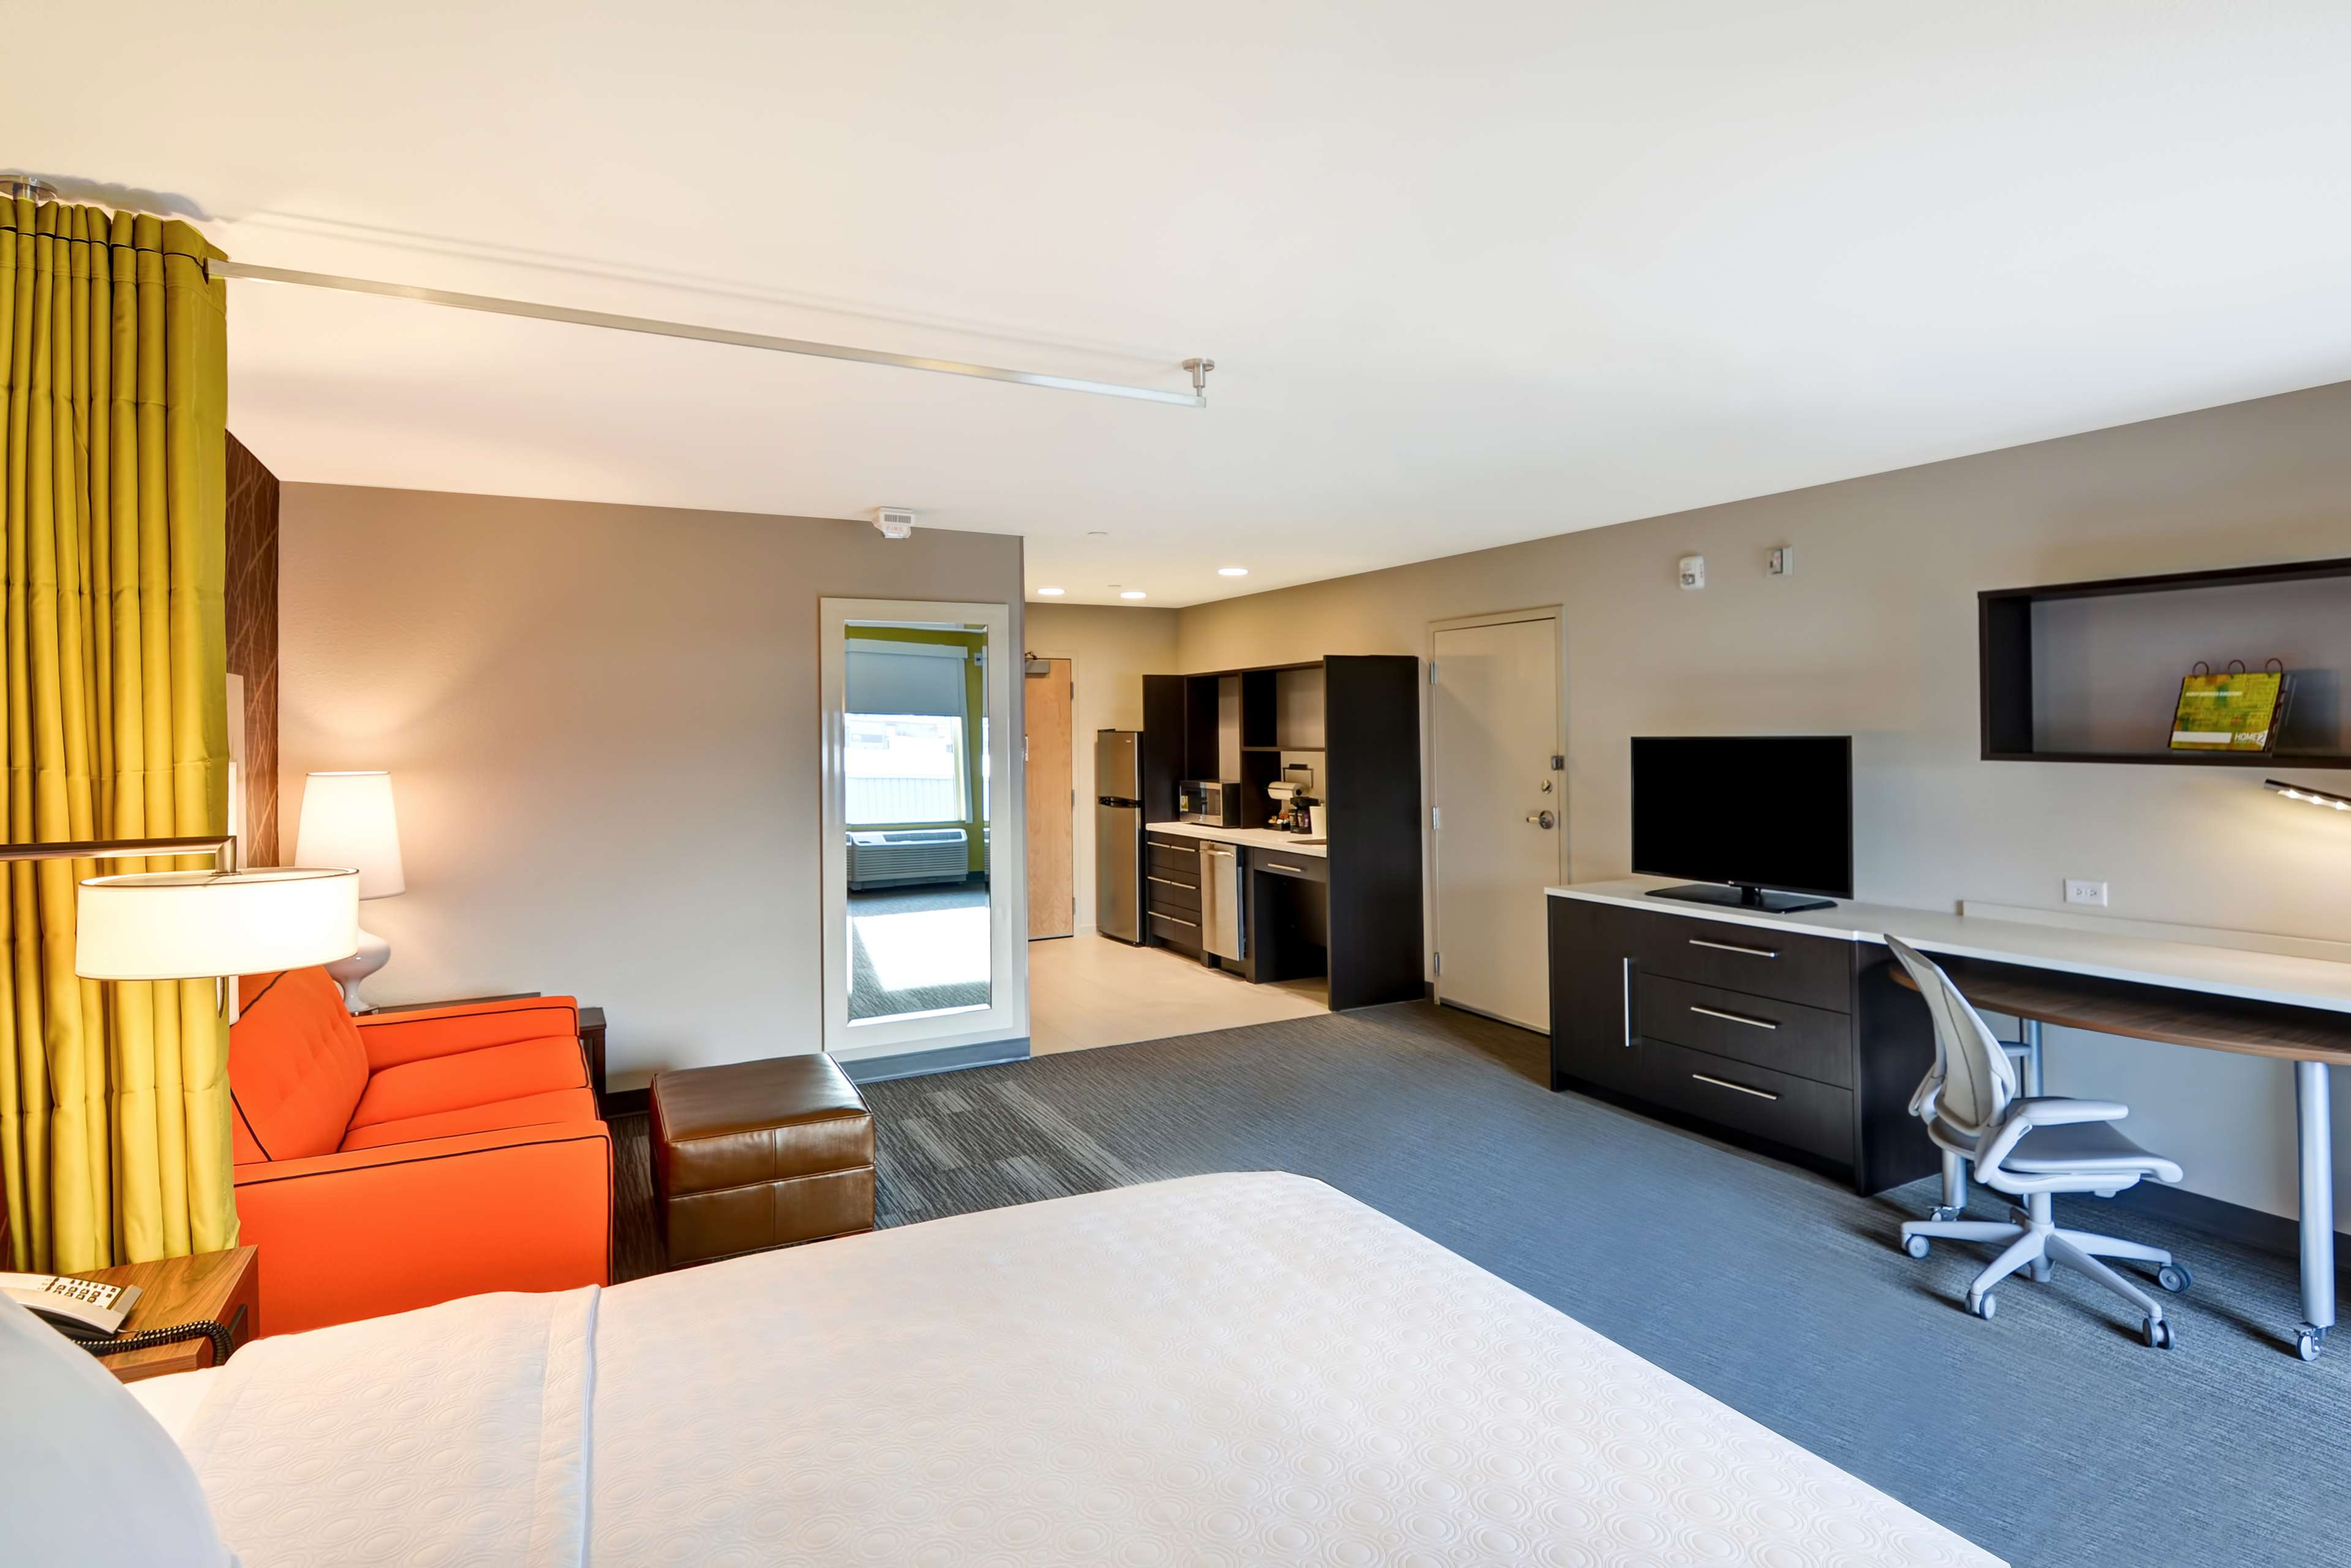 Home2 Suites by Hilton Green Bay image 14